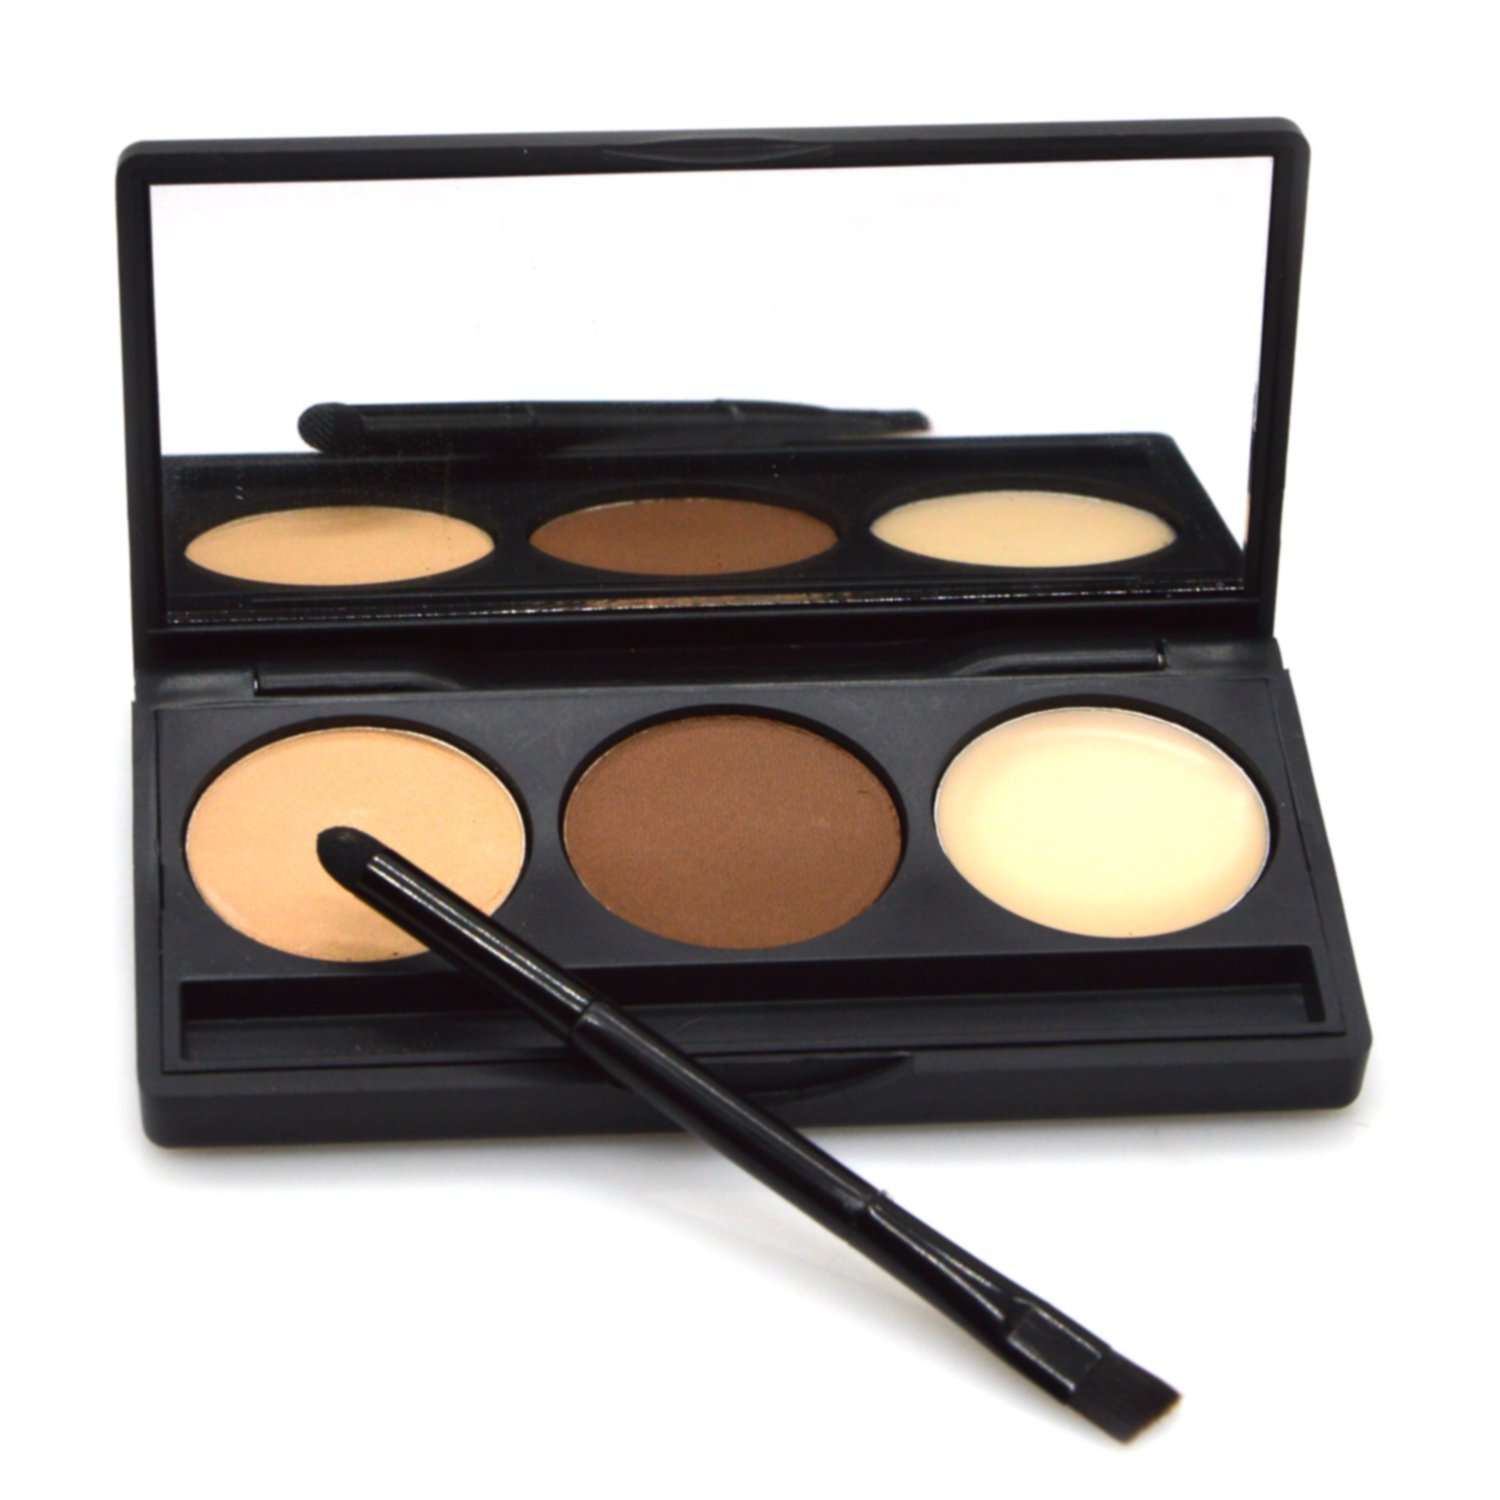 Buy Eyebrow Powder Kit Luismia 3 Color Trendy Makeup Brow Powder